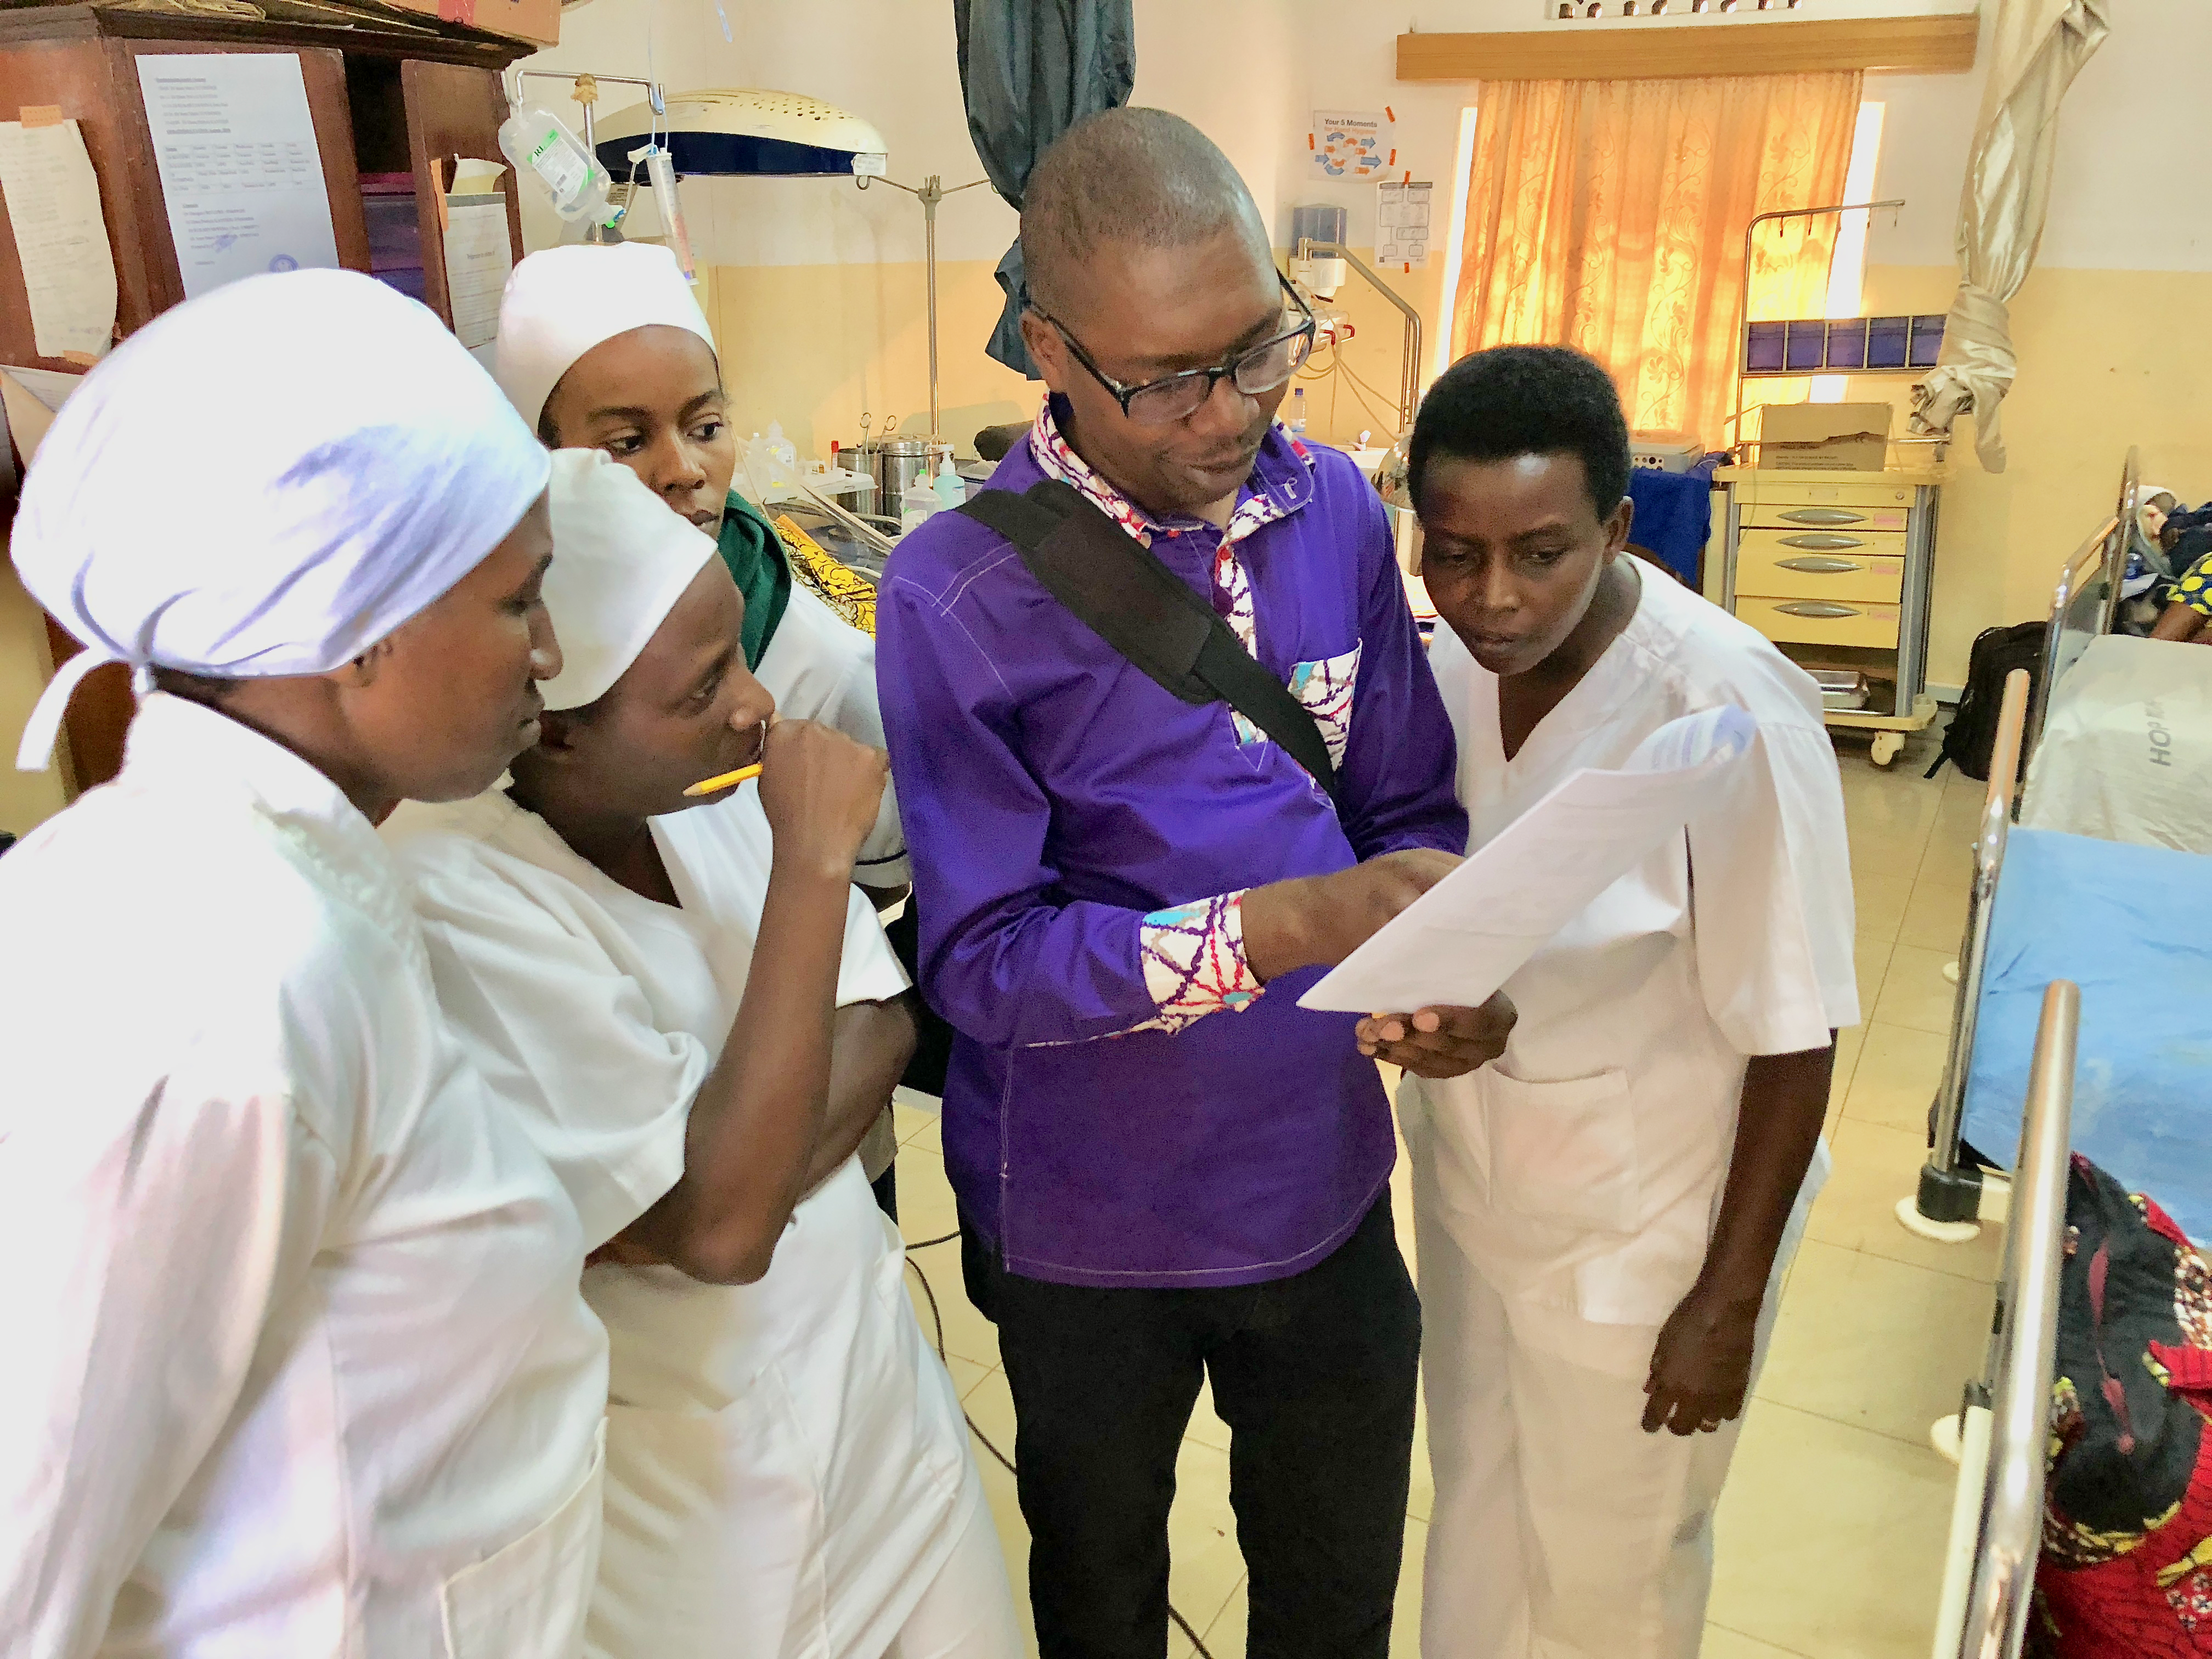 Increasing access to pain relief in Rwanda's public hospitals